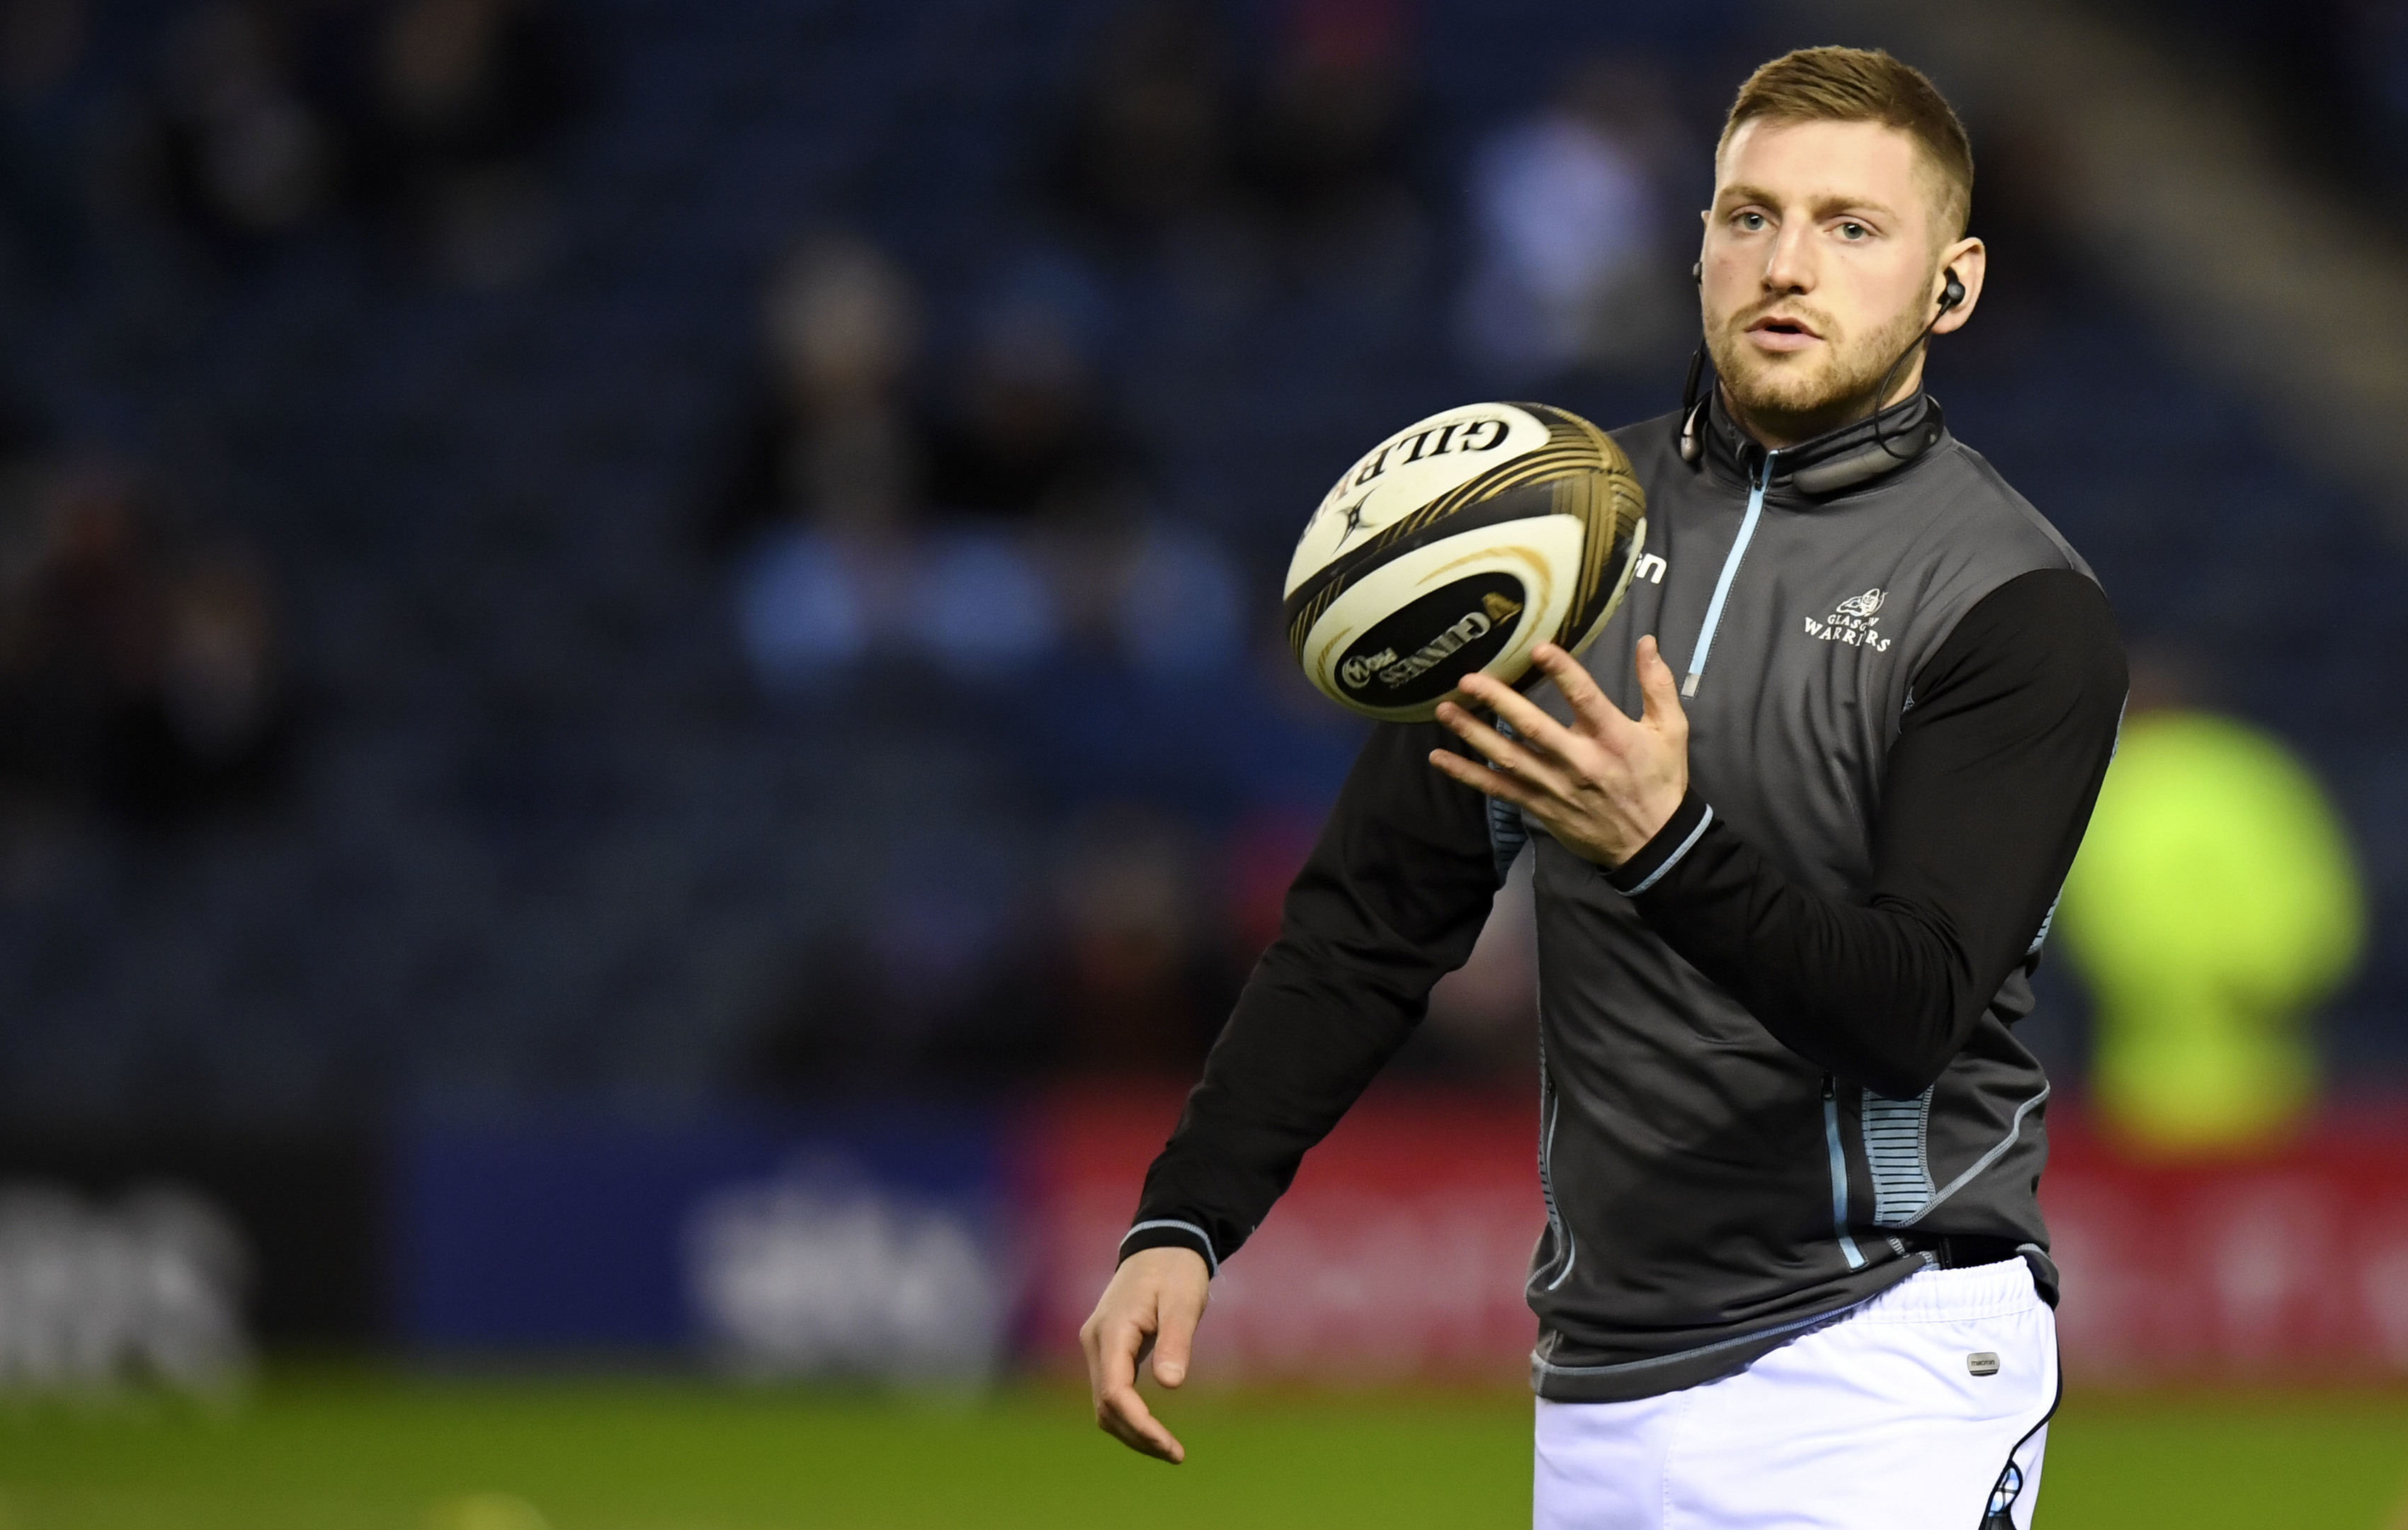 Finn Russell plays his final home game for the Glasgow Warriors before his move to France in the PRO14 semi-final against Scarlets.